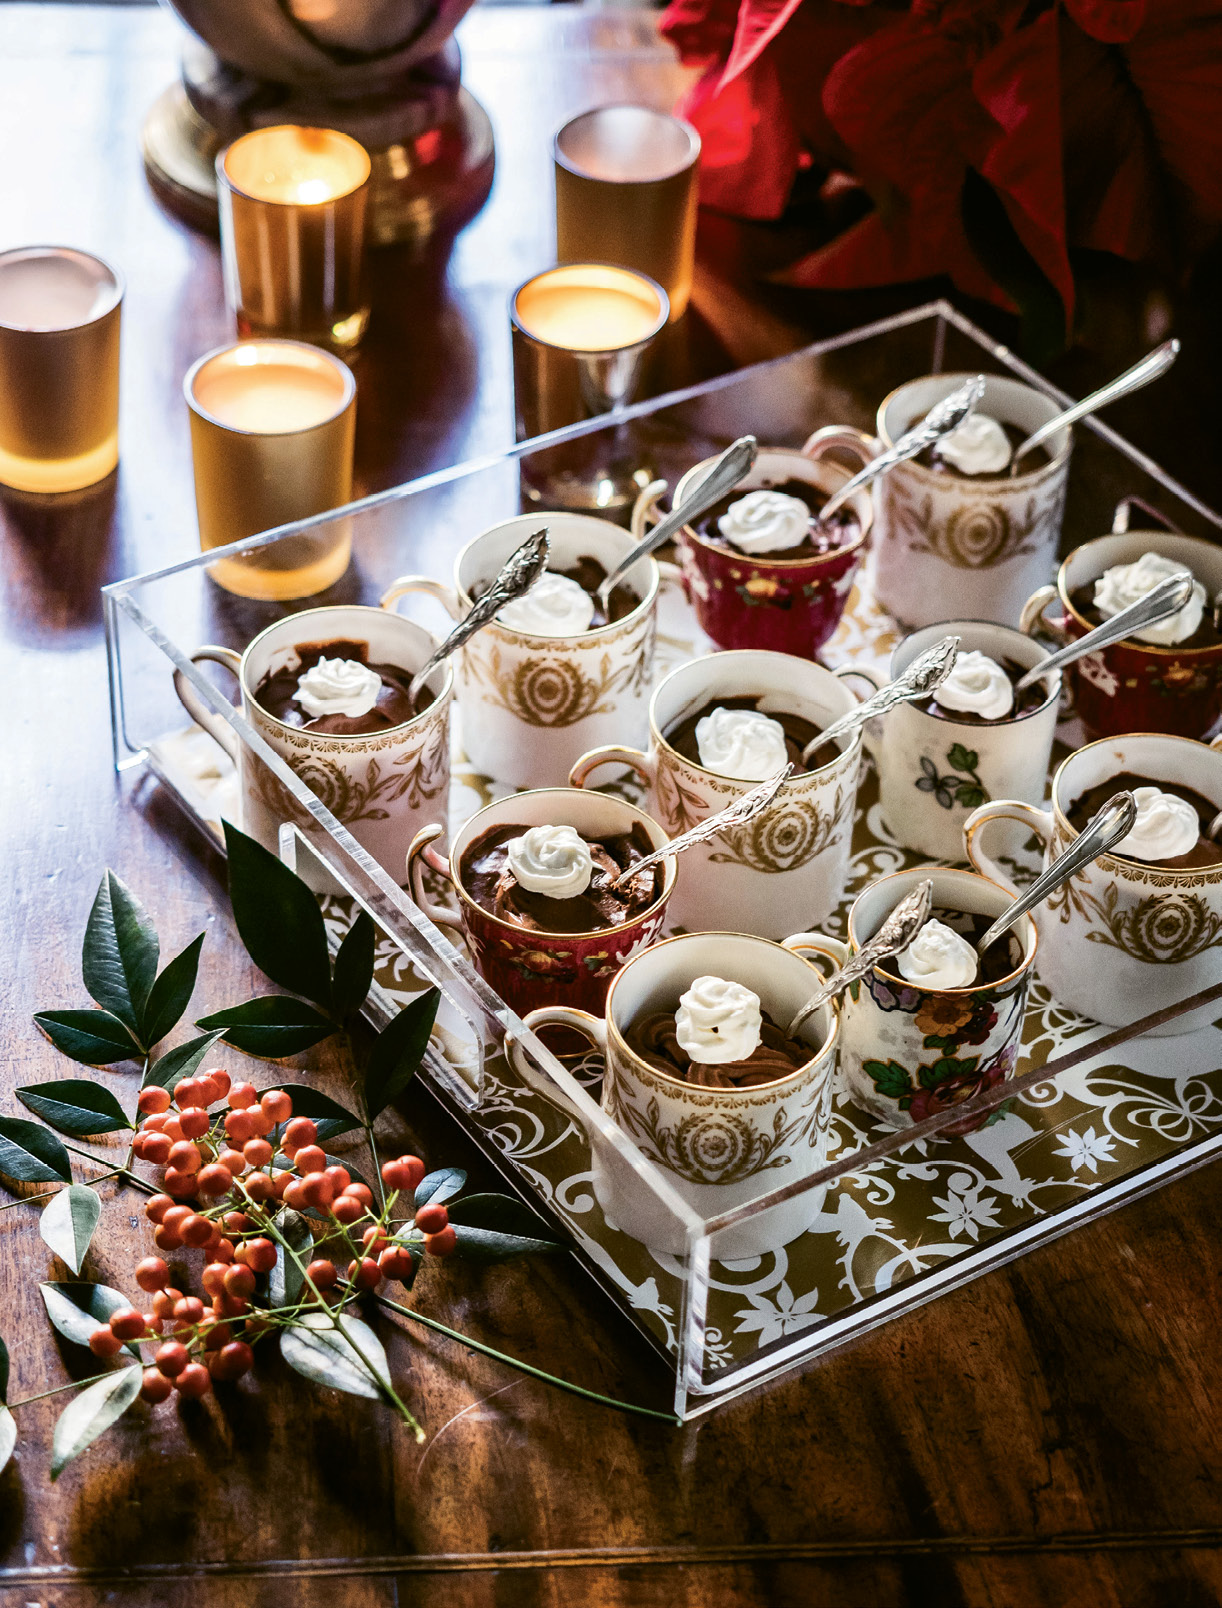 Serving chocolate pots de crème in vintage china cups makes them extra special.